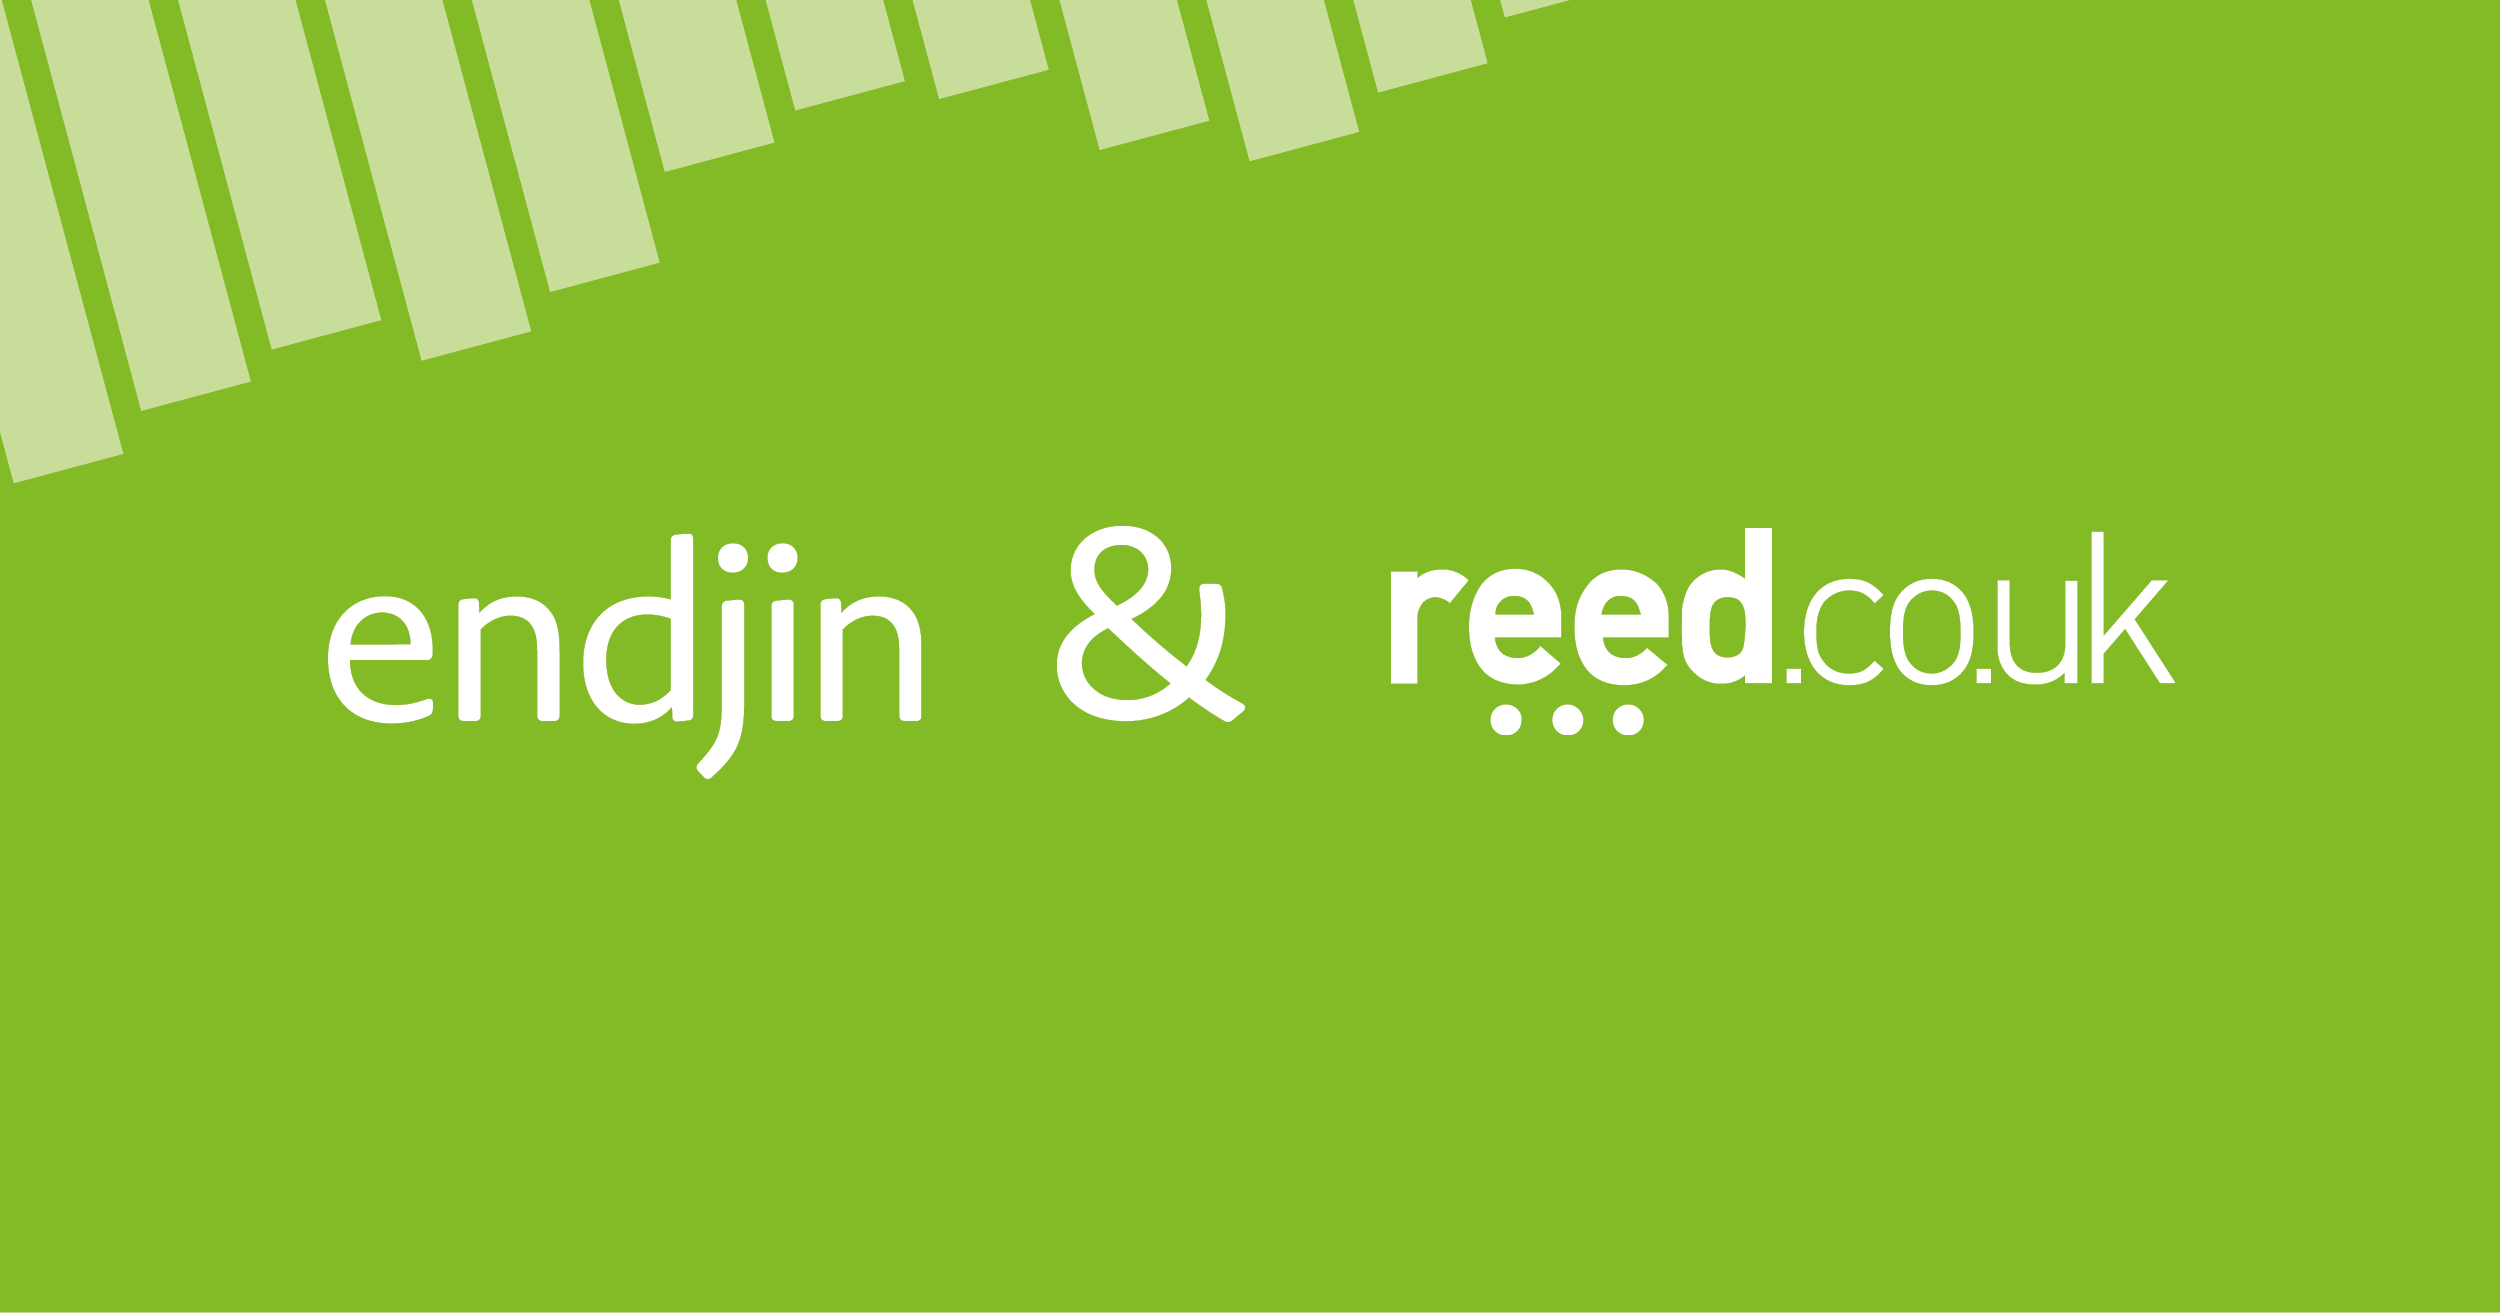 Reed Co Uk Professional Services Endjin